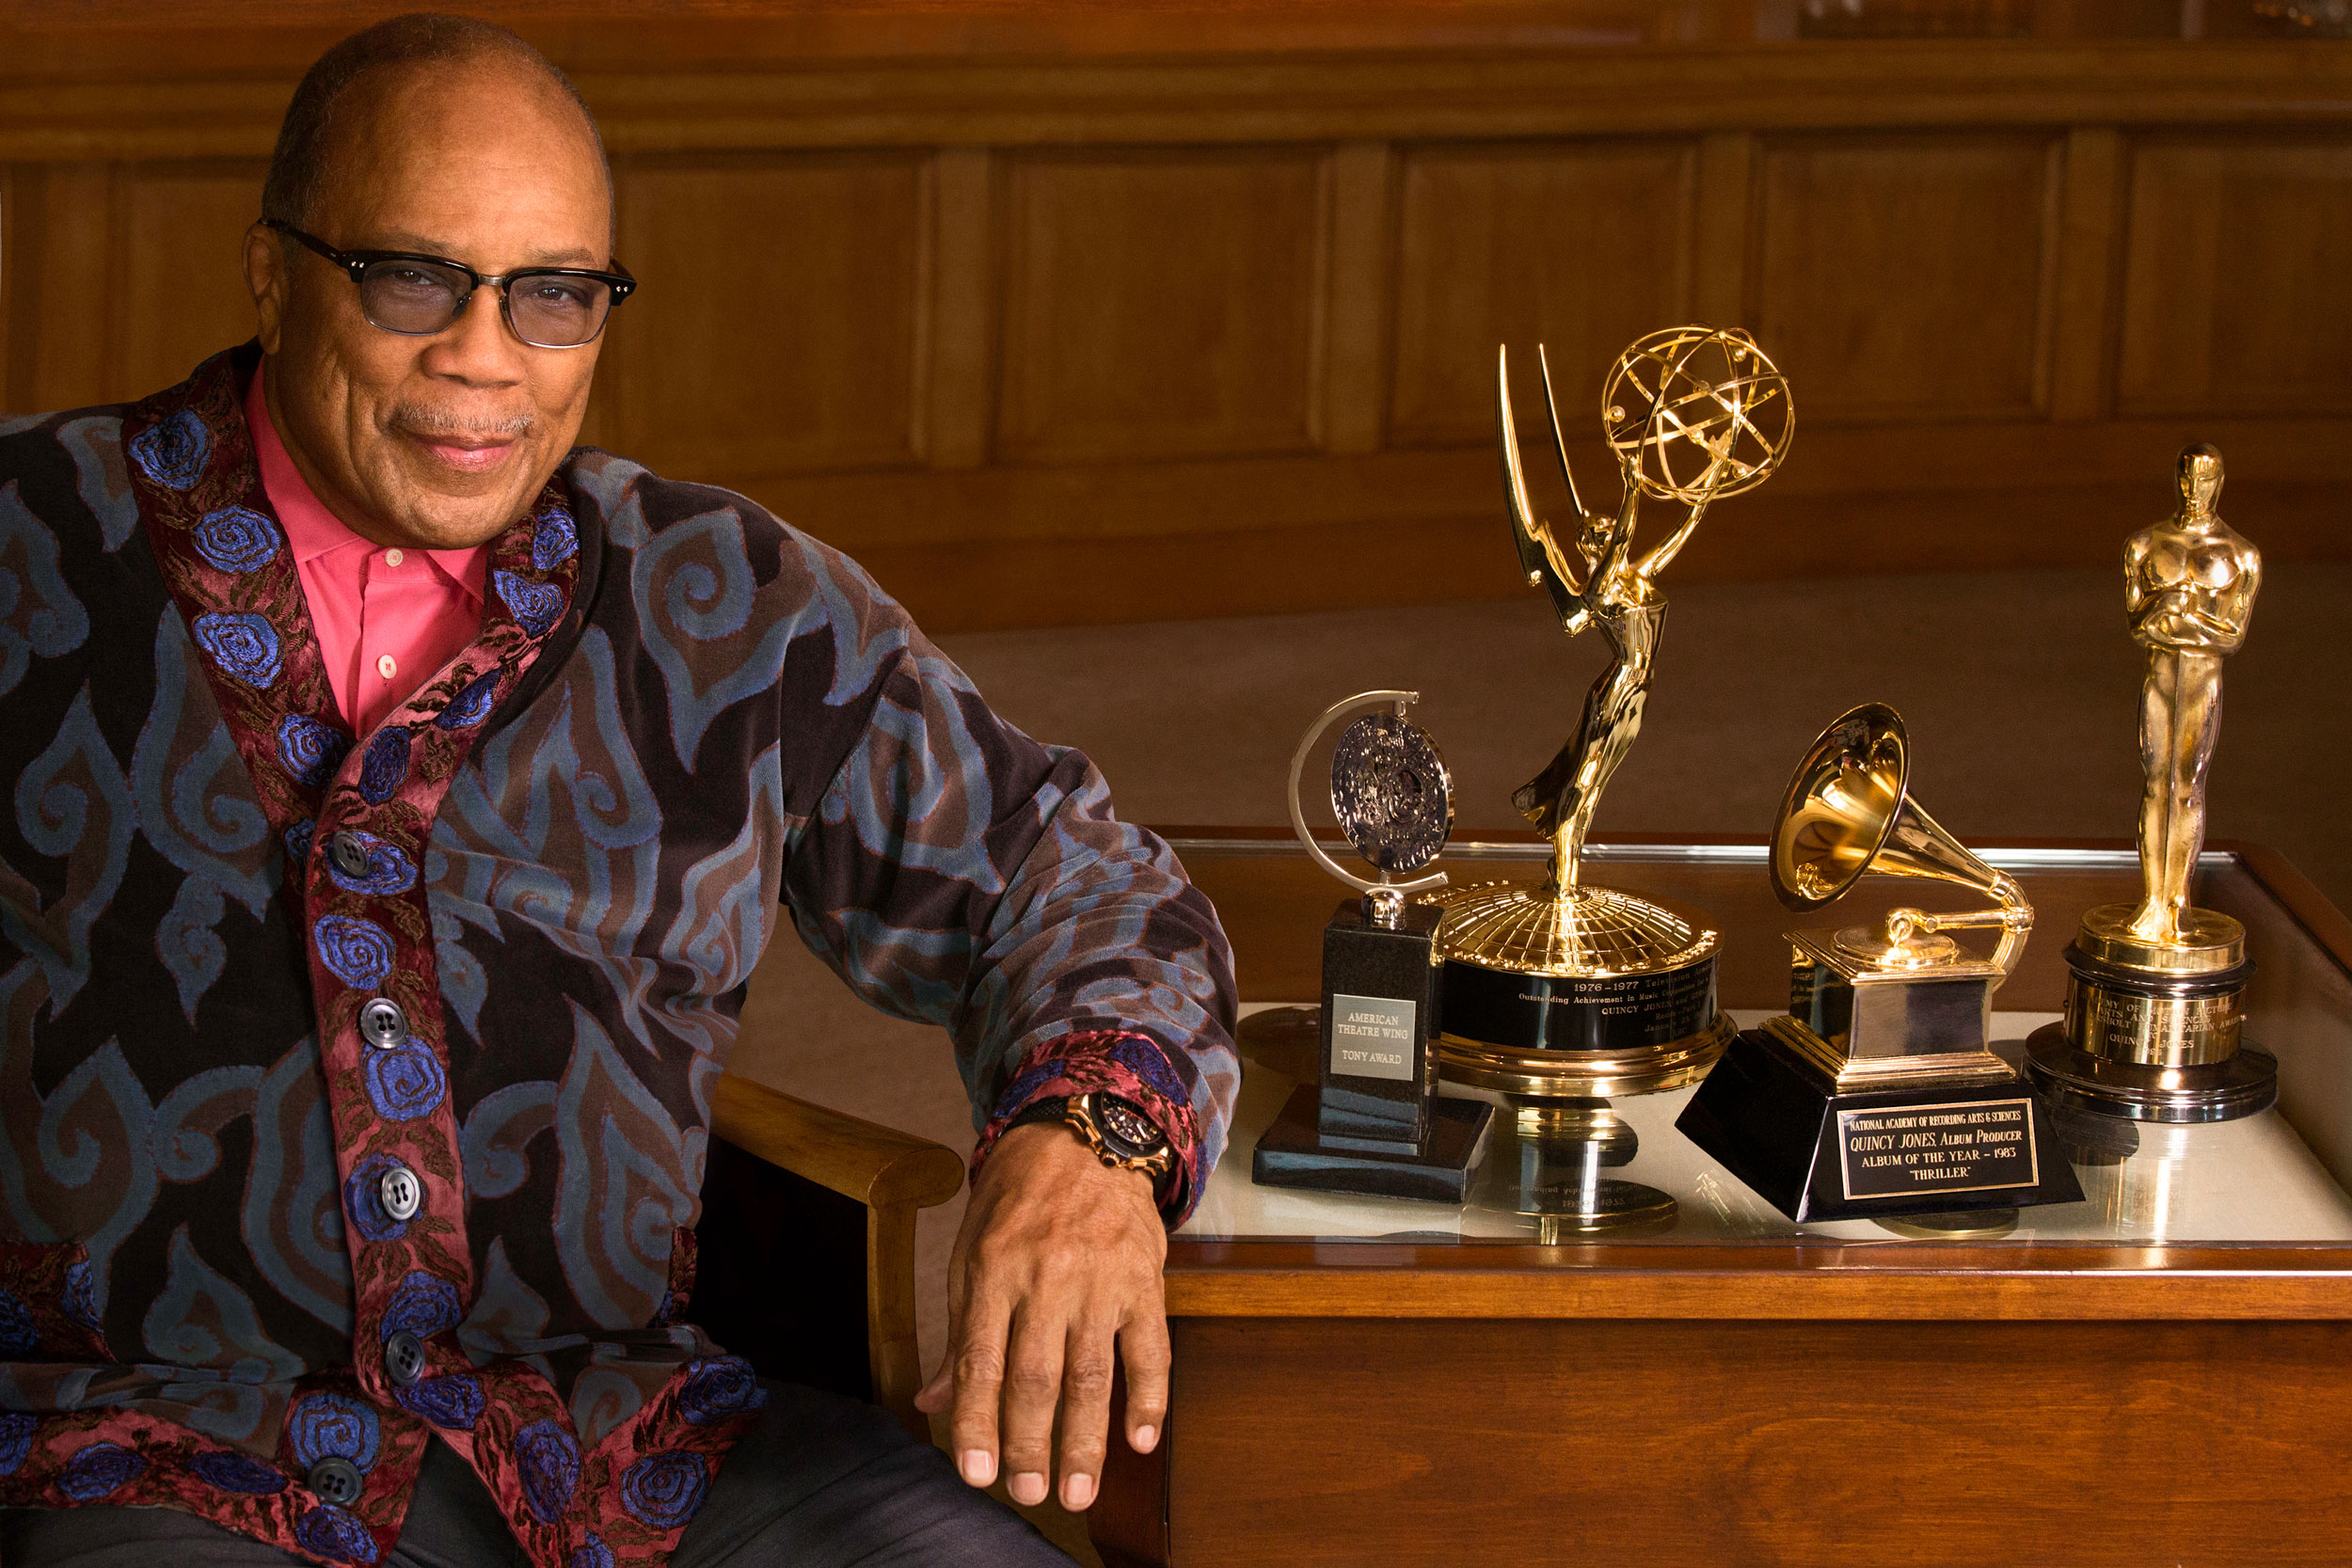 NETFLIX'İN QUINCY JONES BELGESELİNDEN FRAGMAN